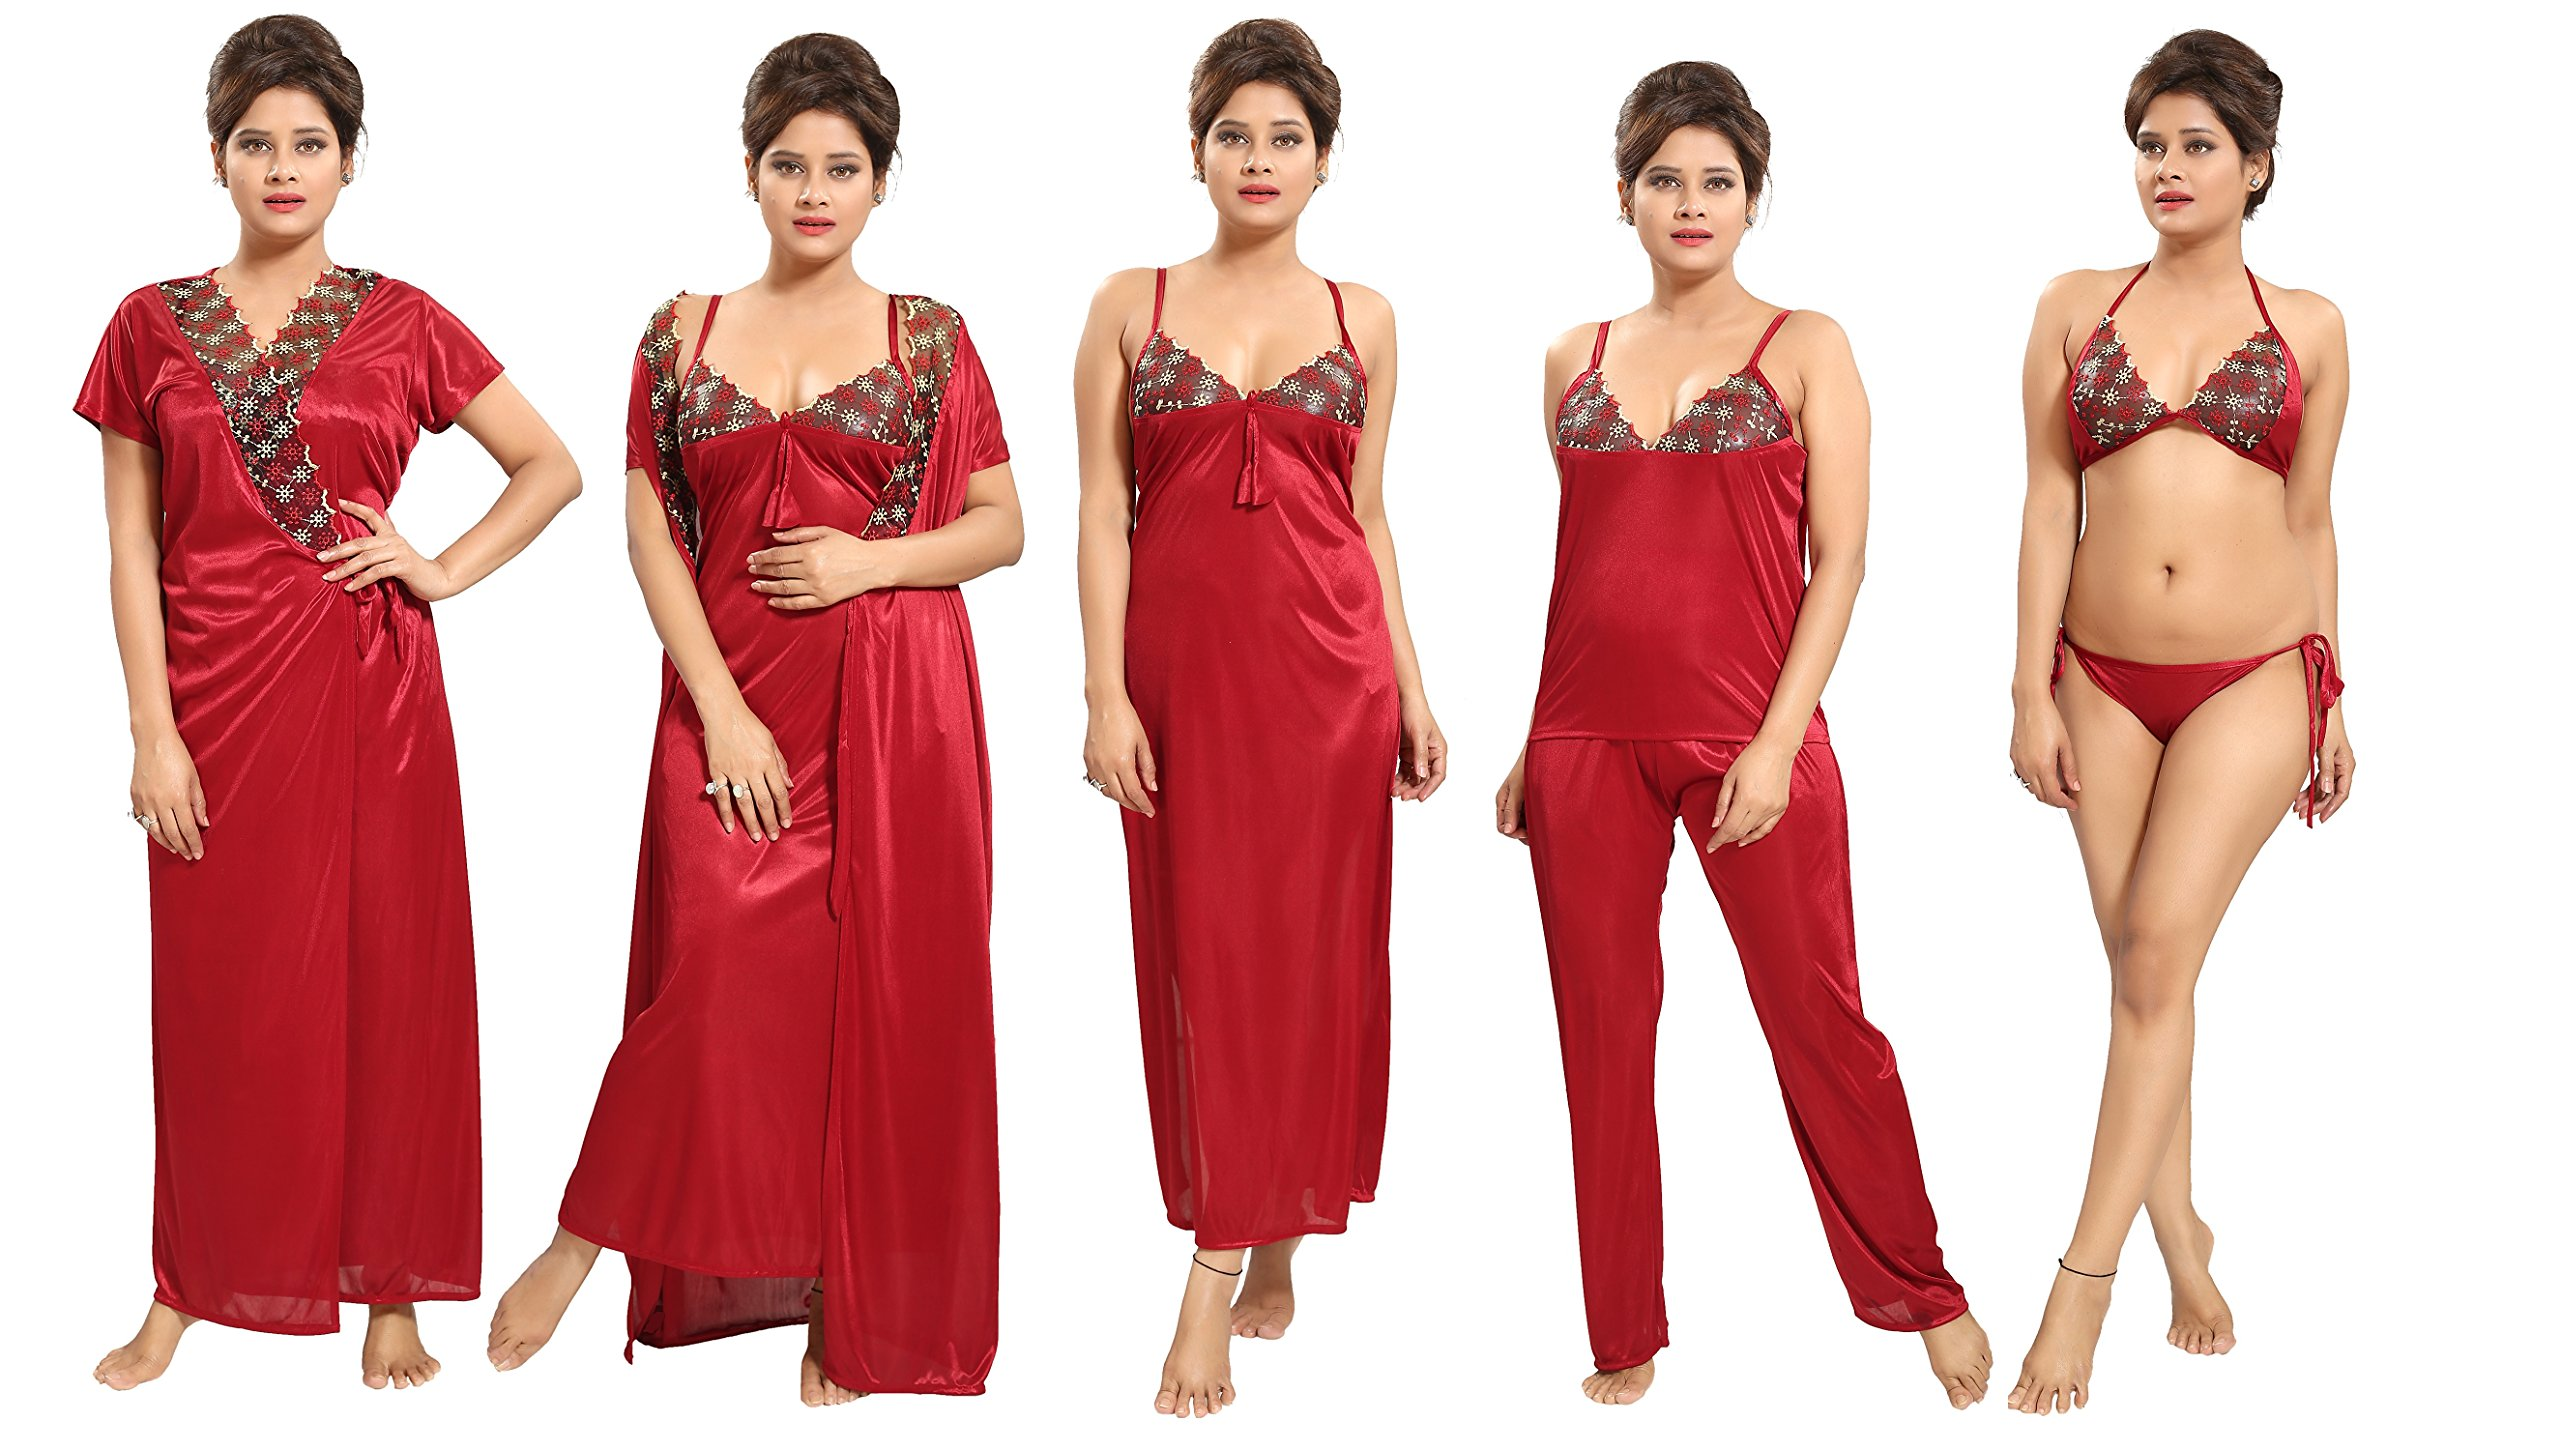 0cb402d221f2e Tucute Women's Satin Nightwear Set of 6 Pcs Nighty, Wrap Gown, Top ...